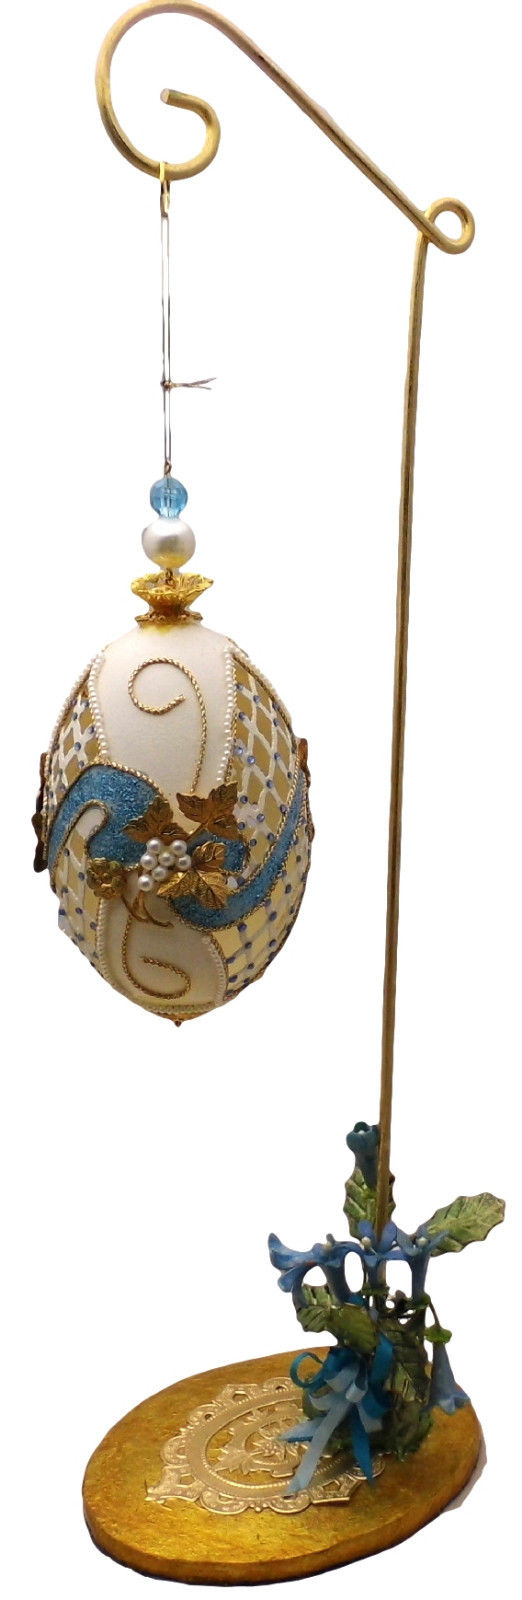 Hand-Decorated Real GOOSE Egg Art Blue & White on Hanger Ornate Gift Collectable